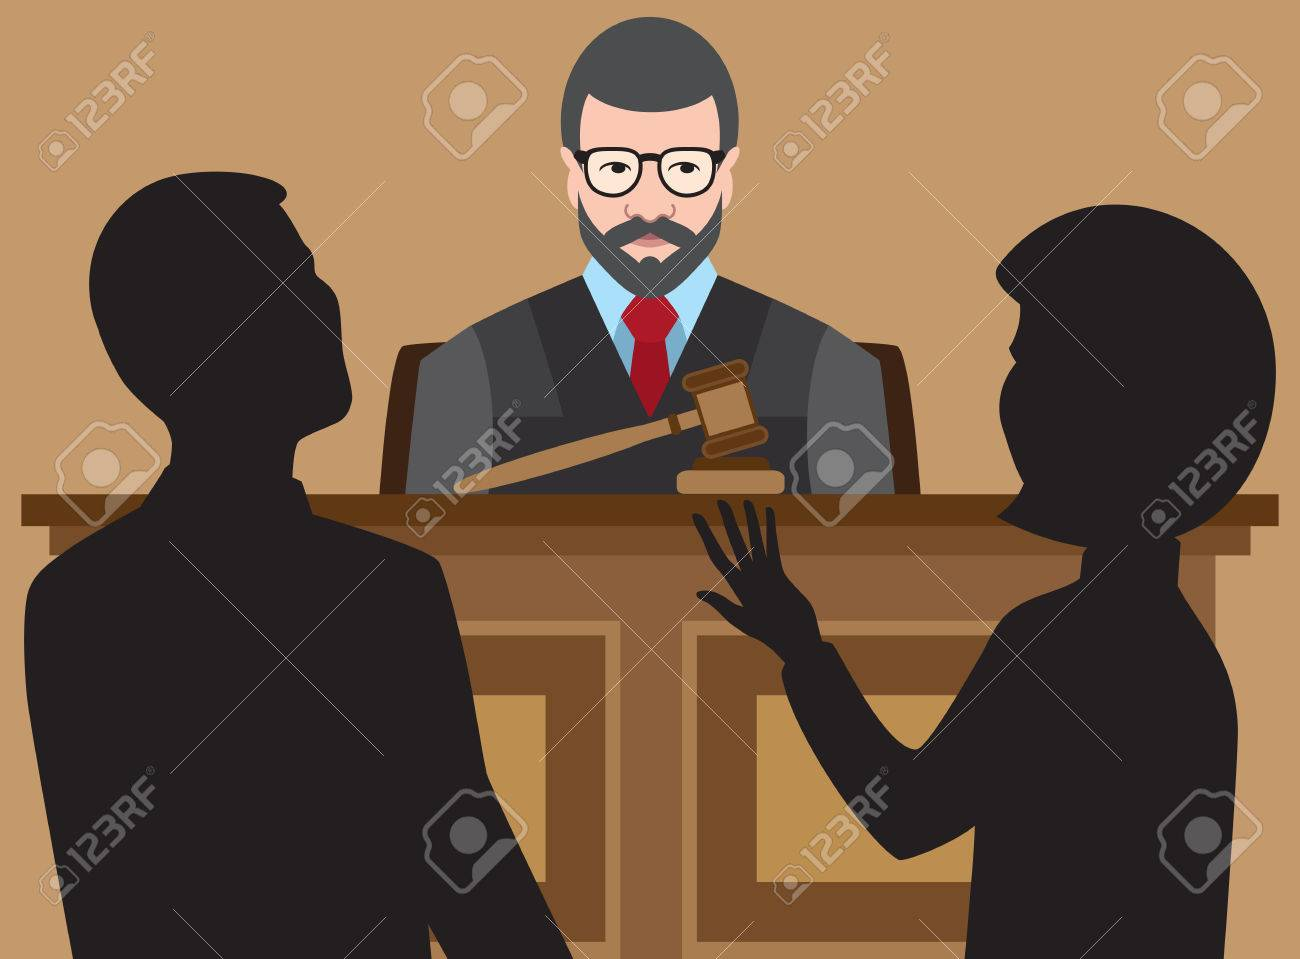 Judge is listening to two lawyers argue their cases - 55087912